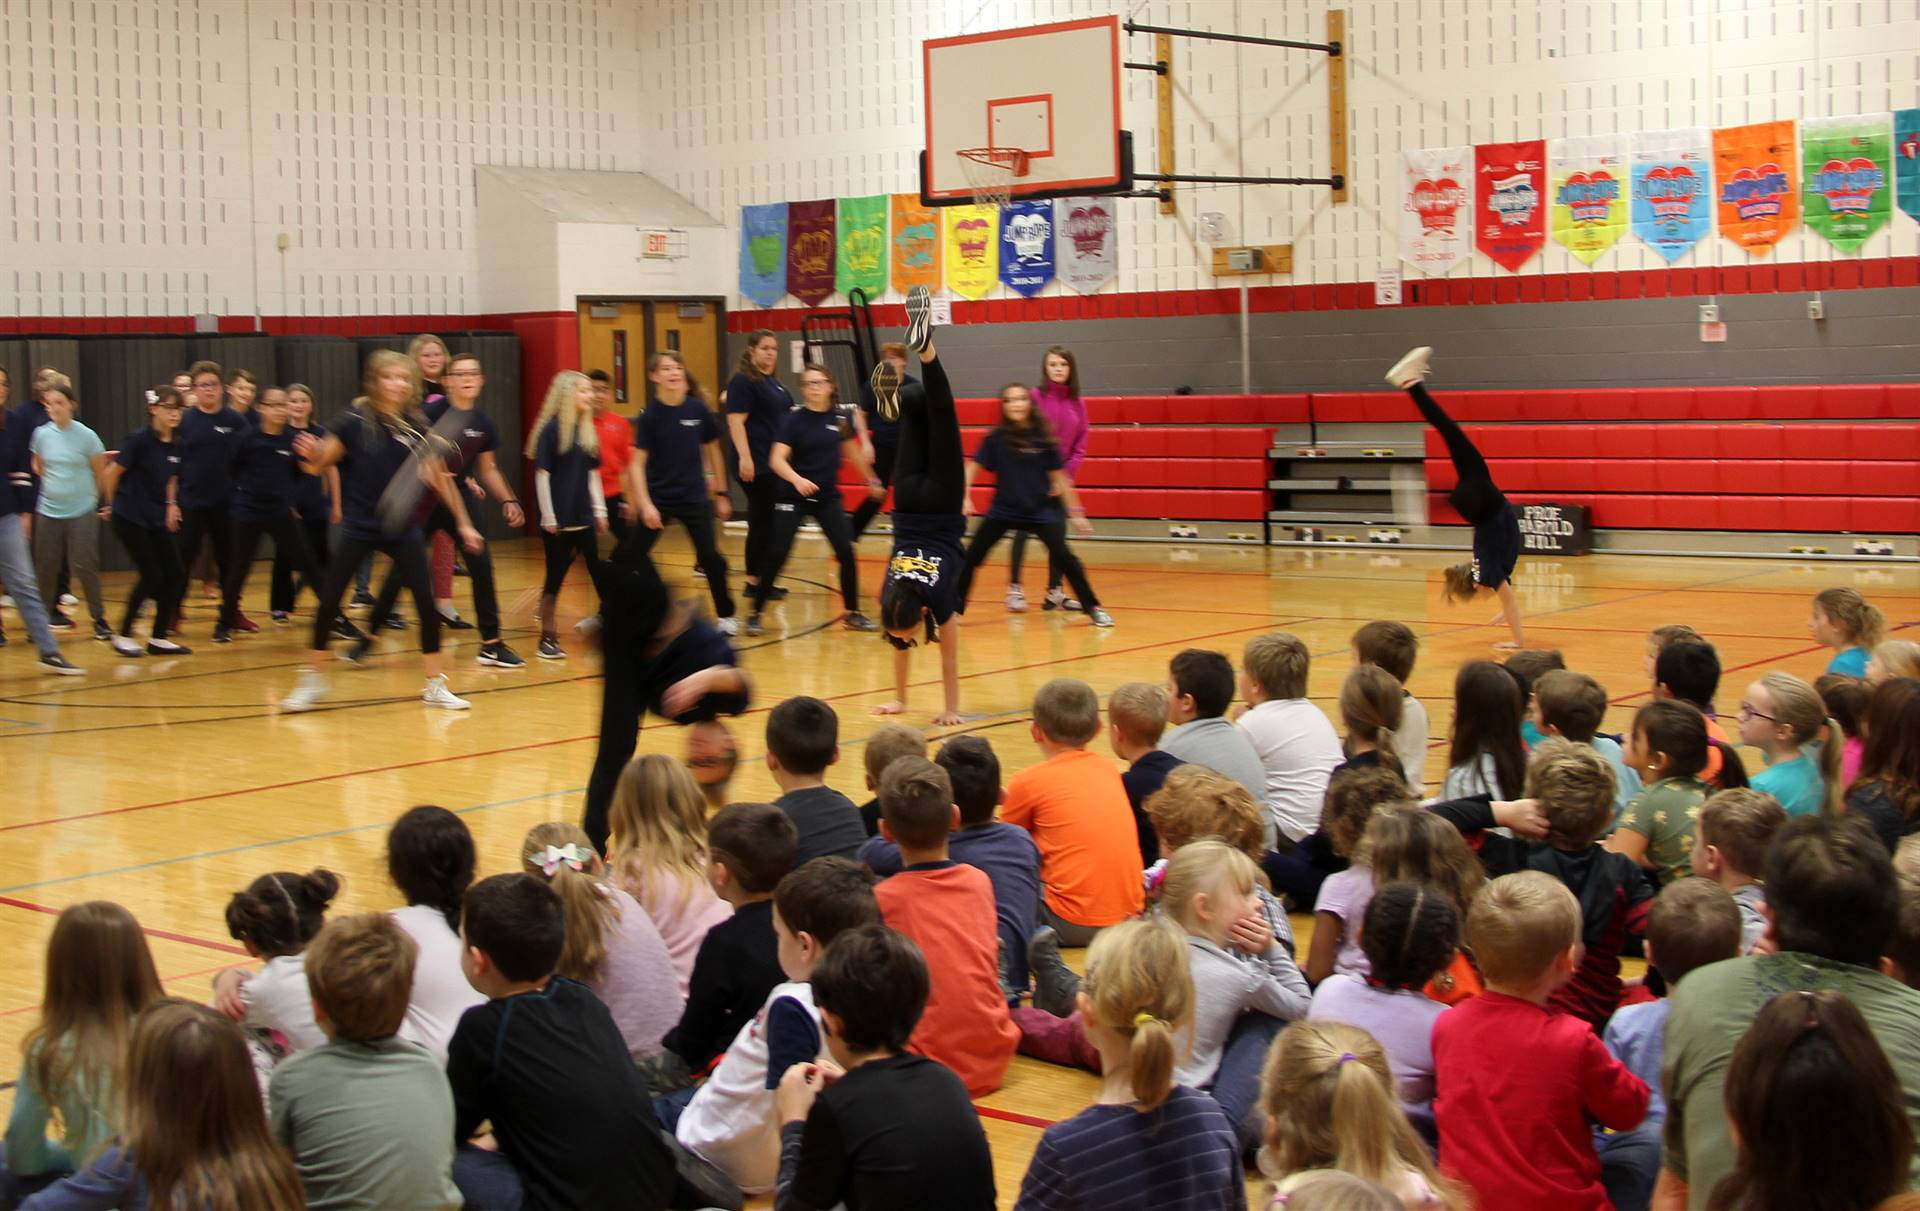 middle school students doing flips during performance